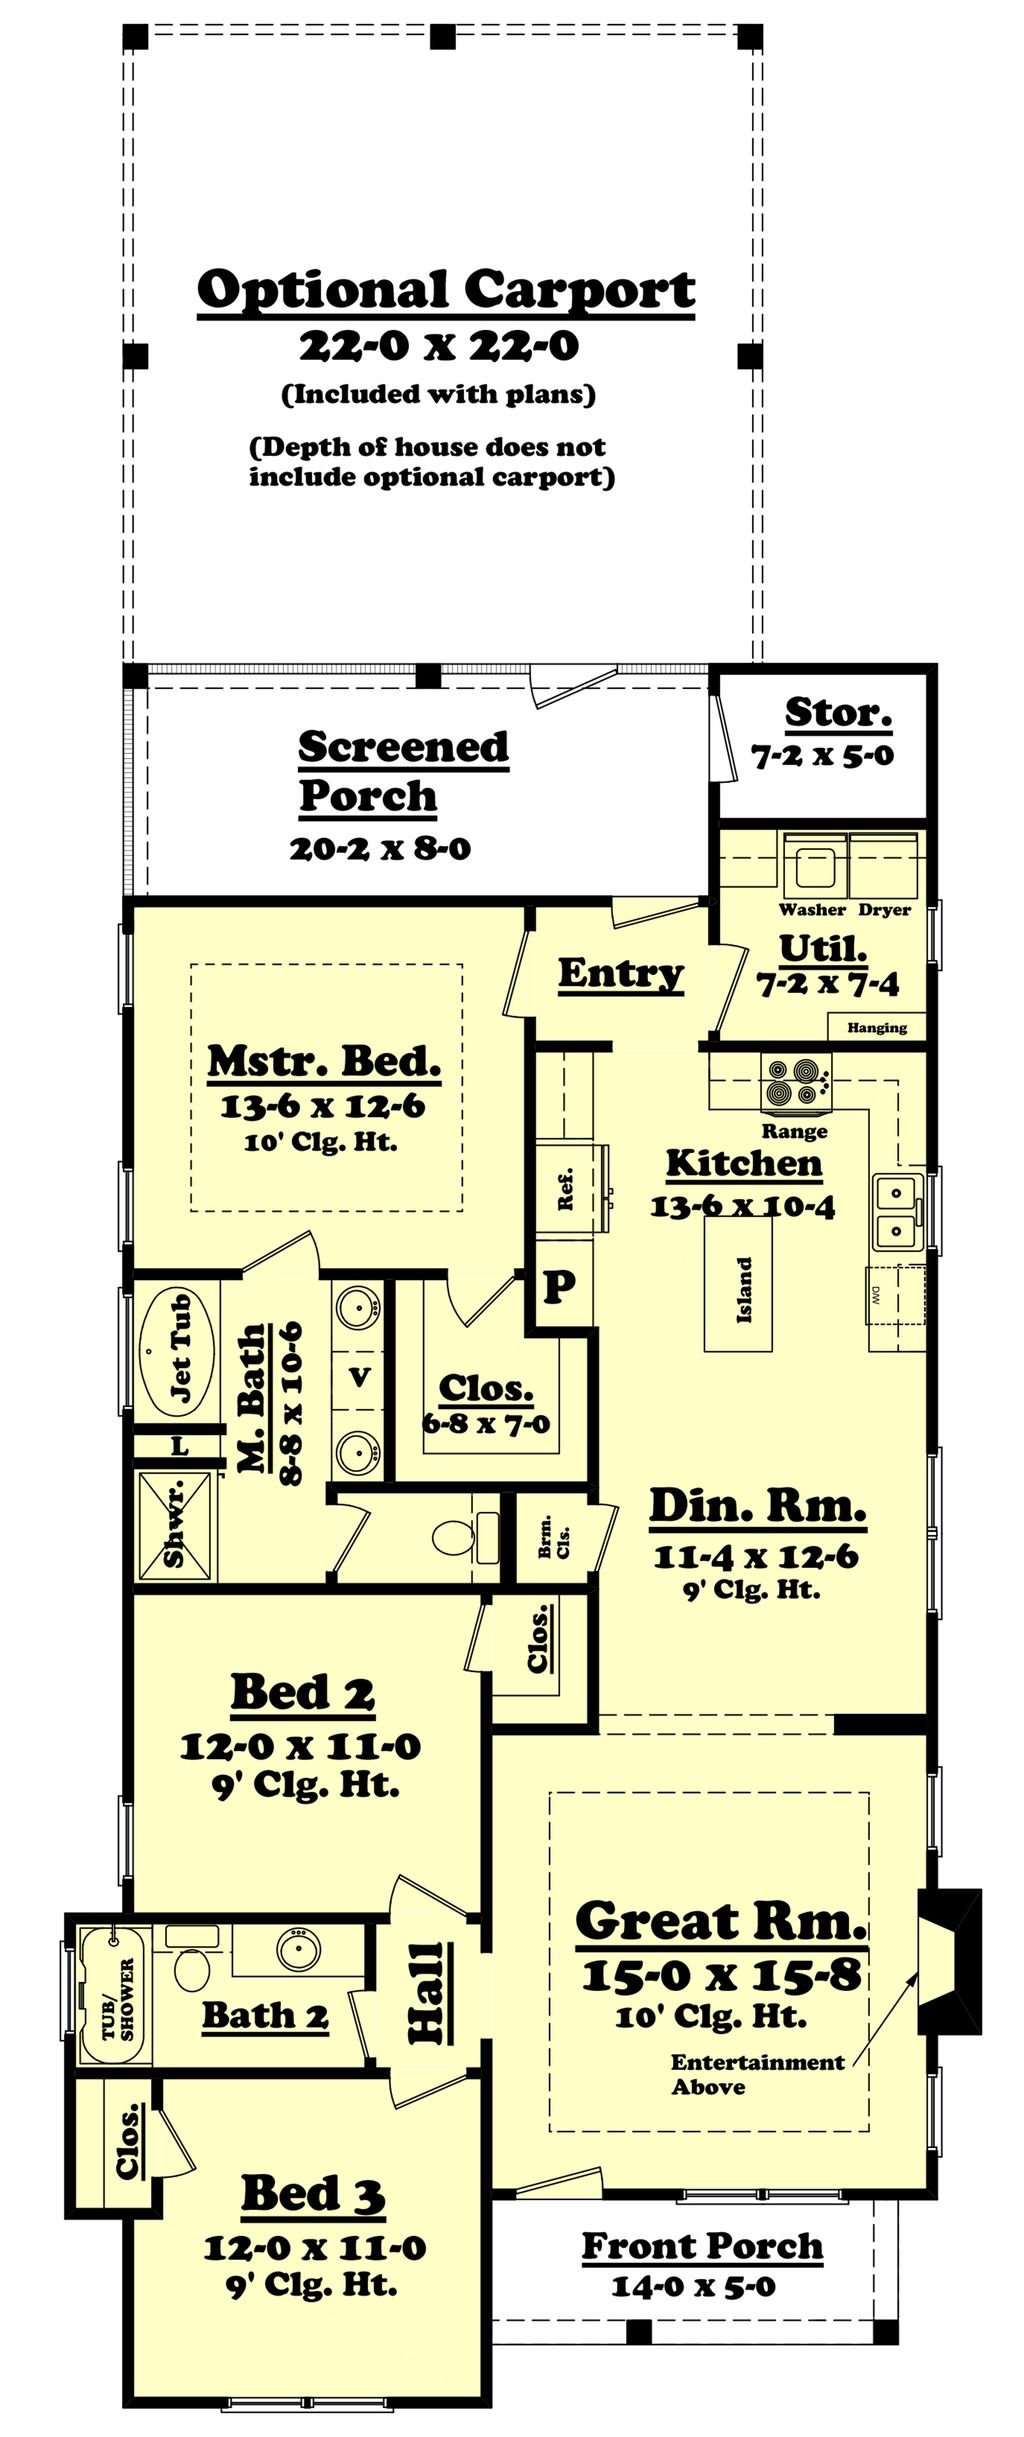 Cottage Style House Plan 3 Beds 2 Baths 1396 Sq Ft Plan 430 95 Cottage Style House Plans House Plans How To Plan